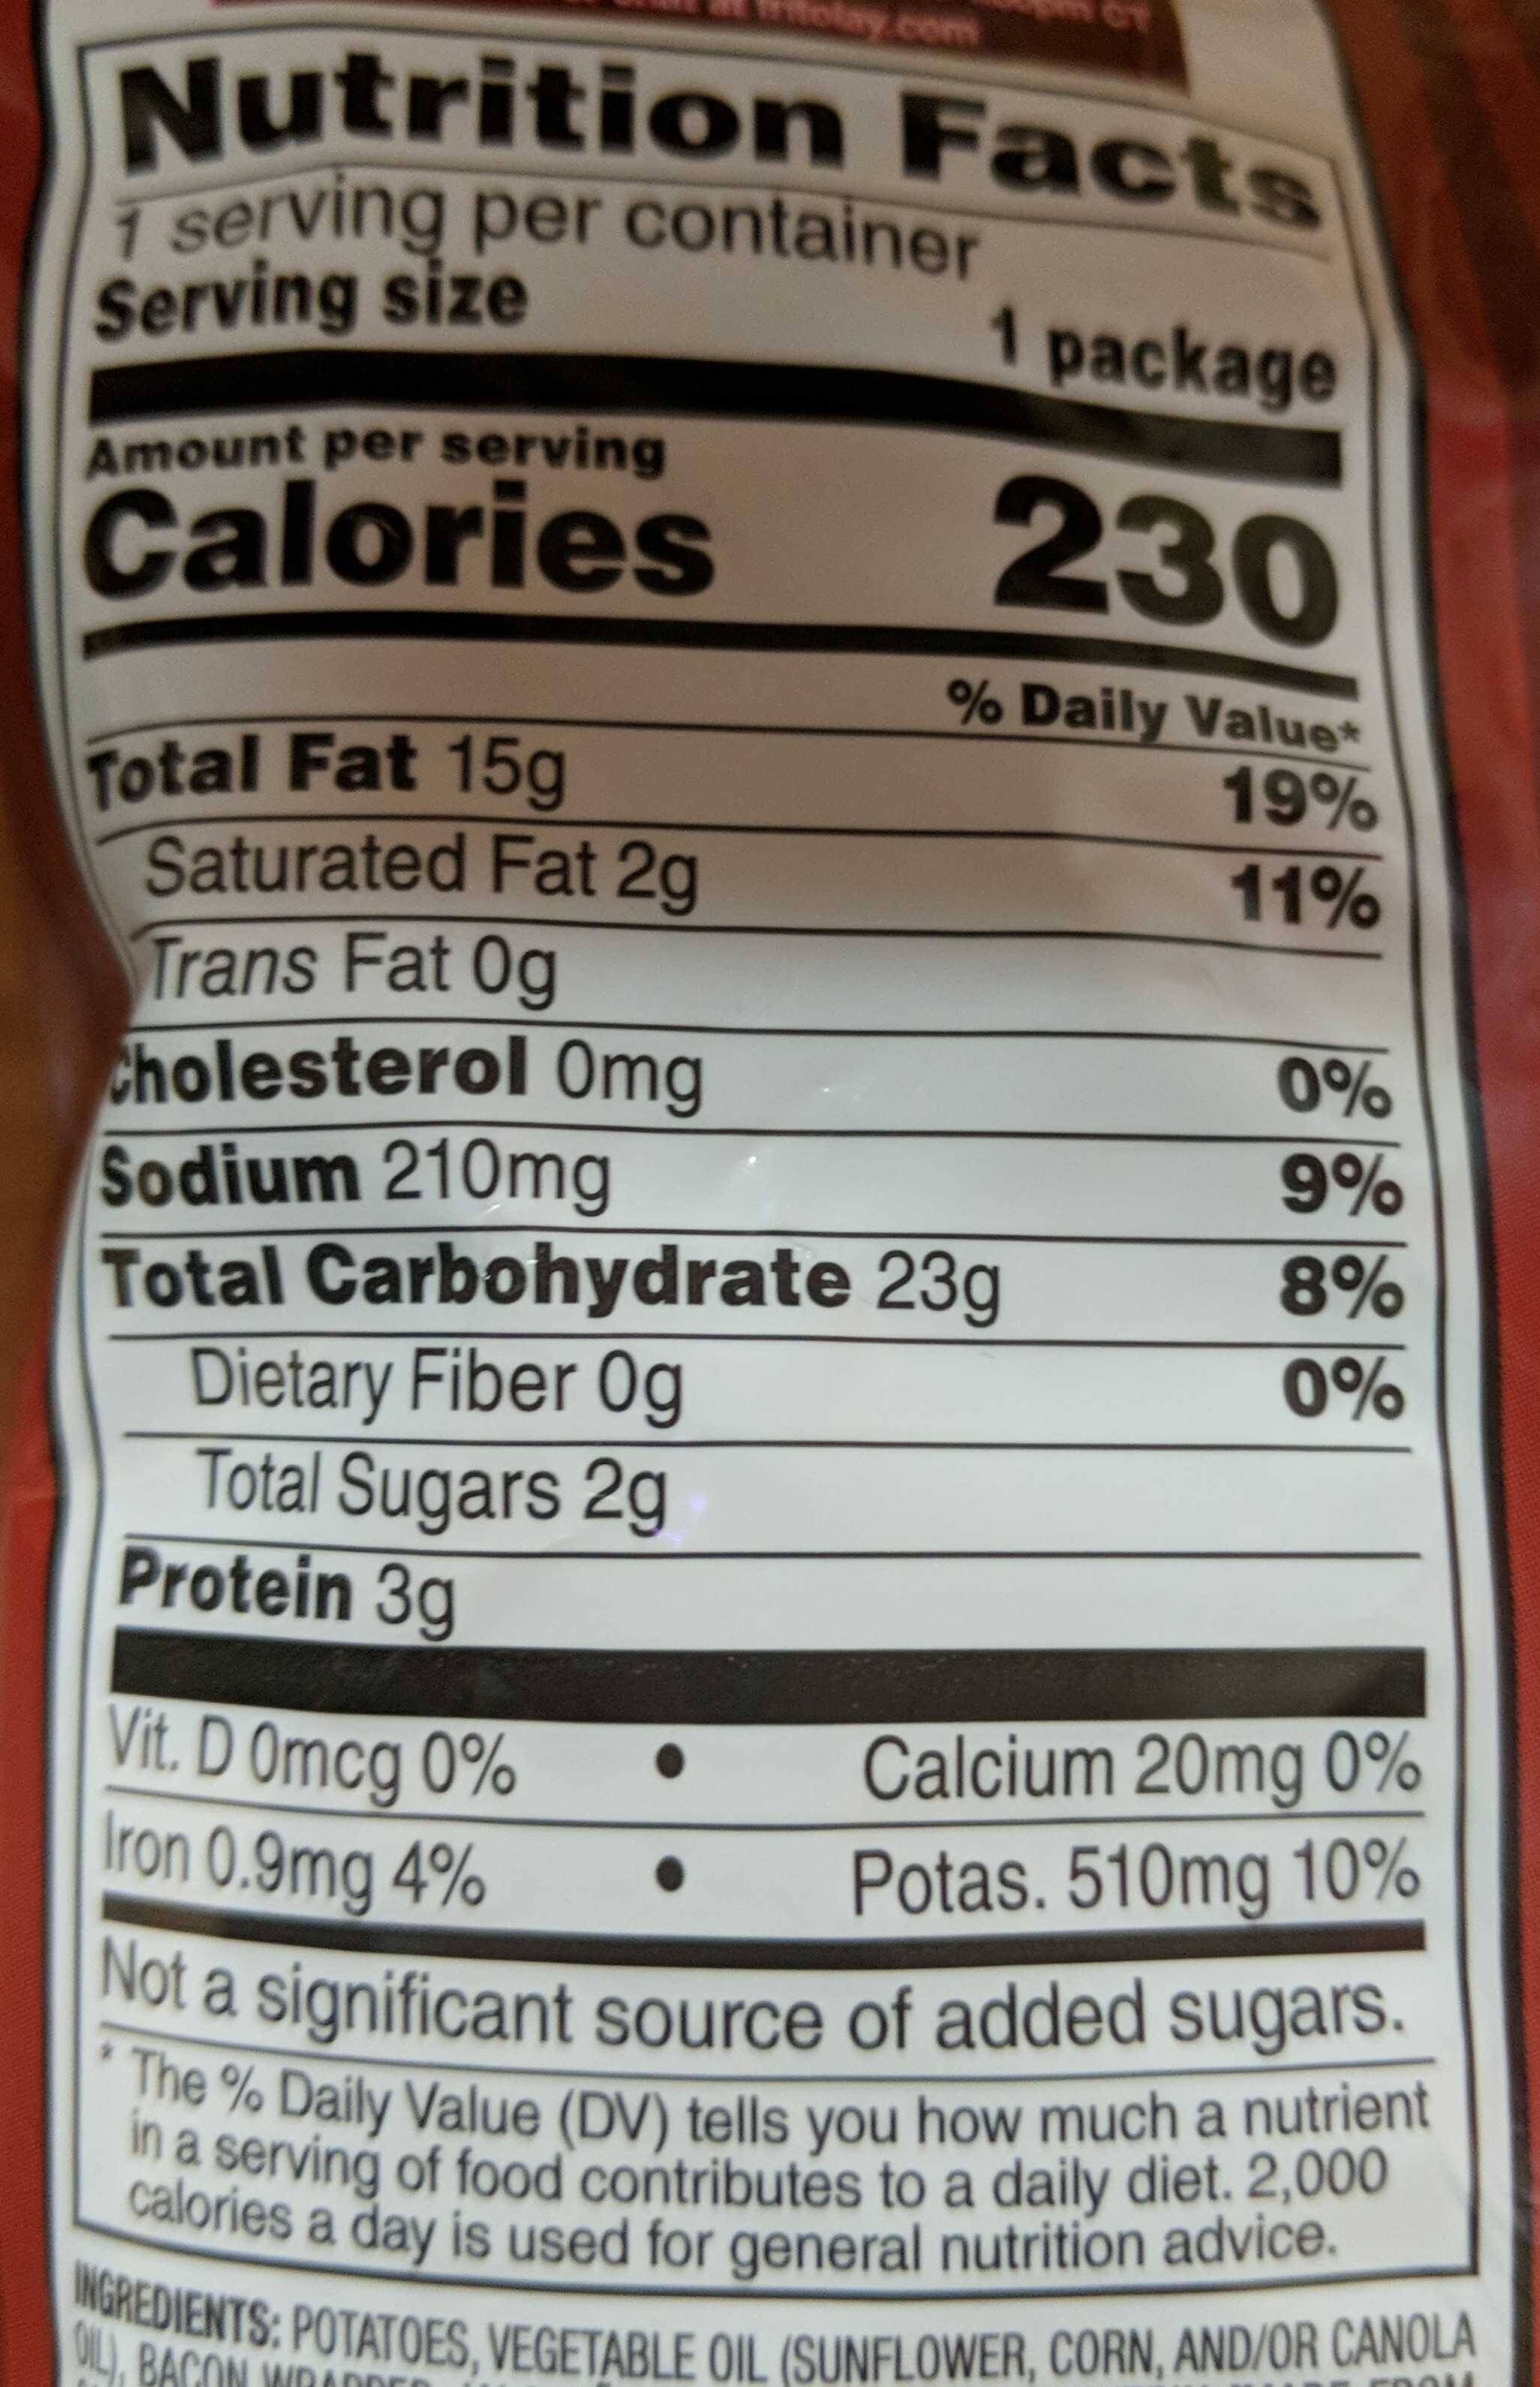 Bacon Wrapped Jalapeño Popper Flavored Potato Chips - Nutrition facts - en